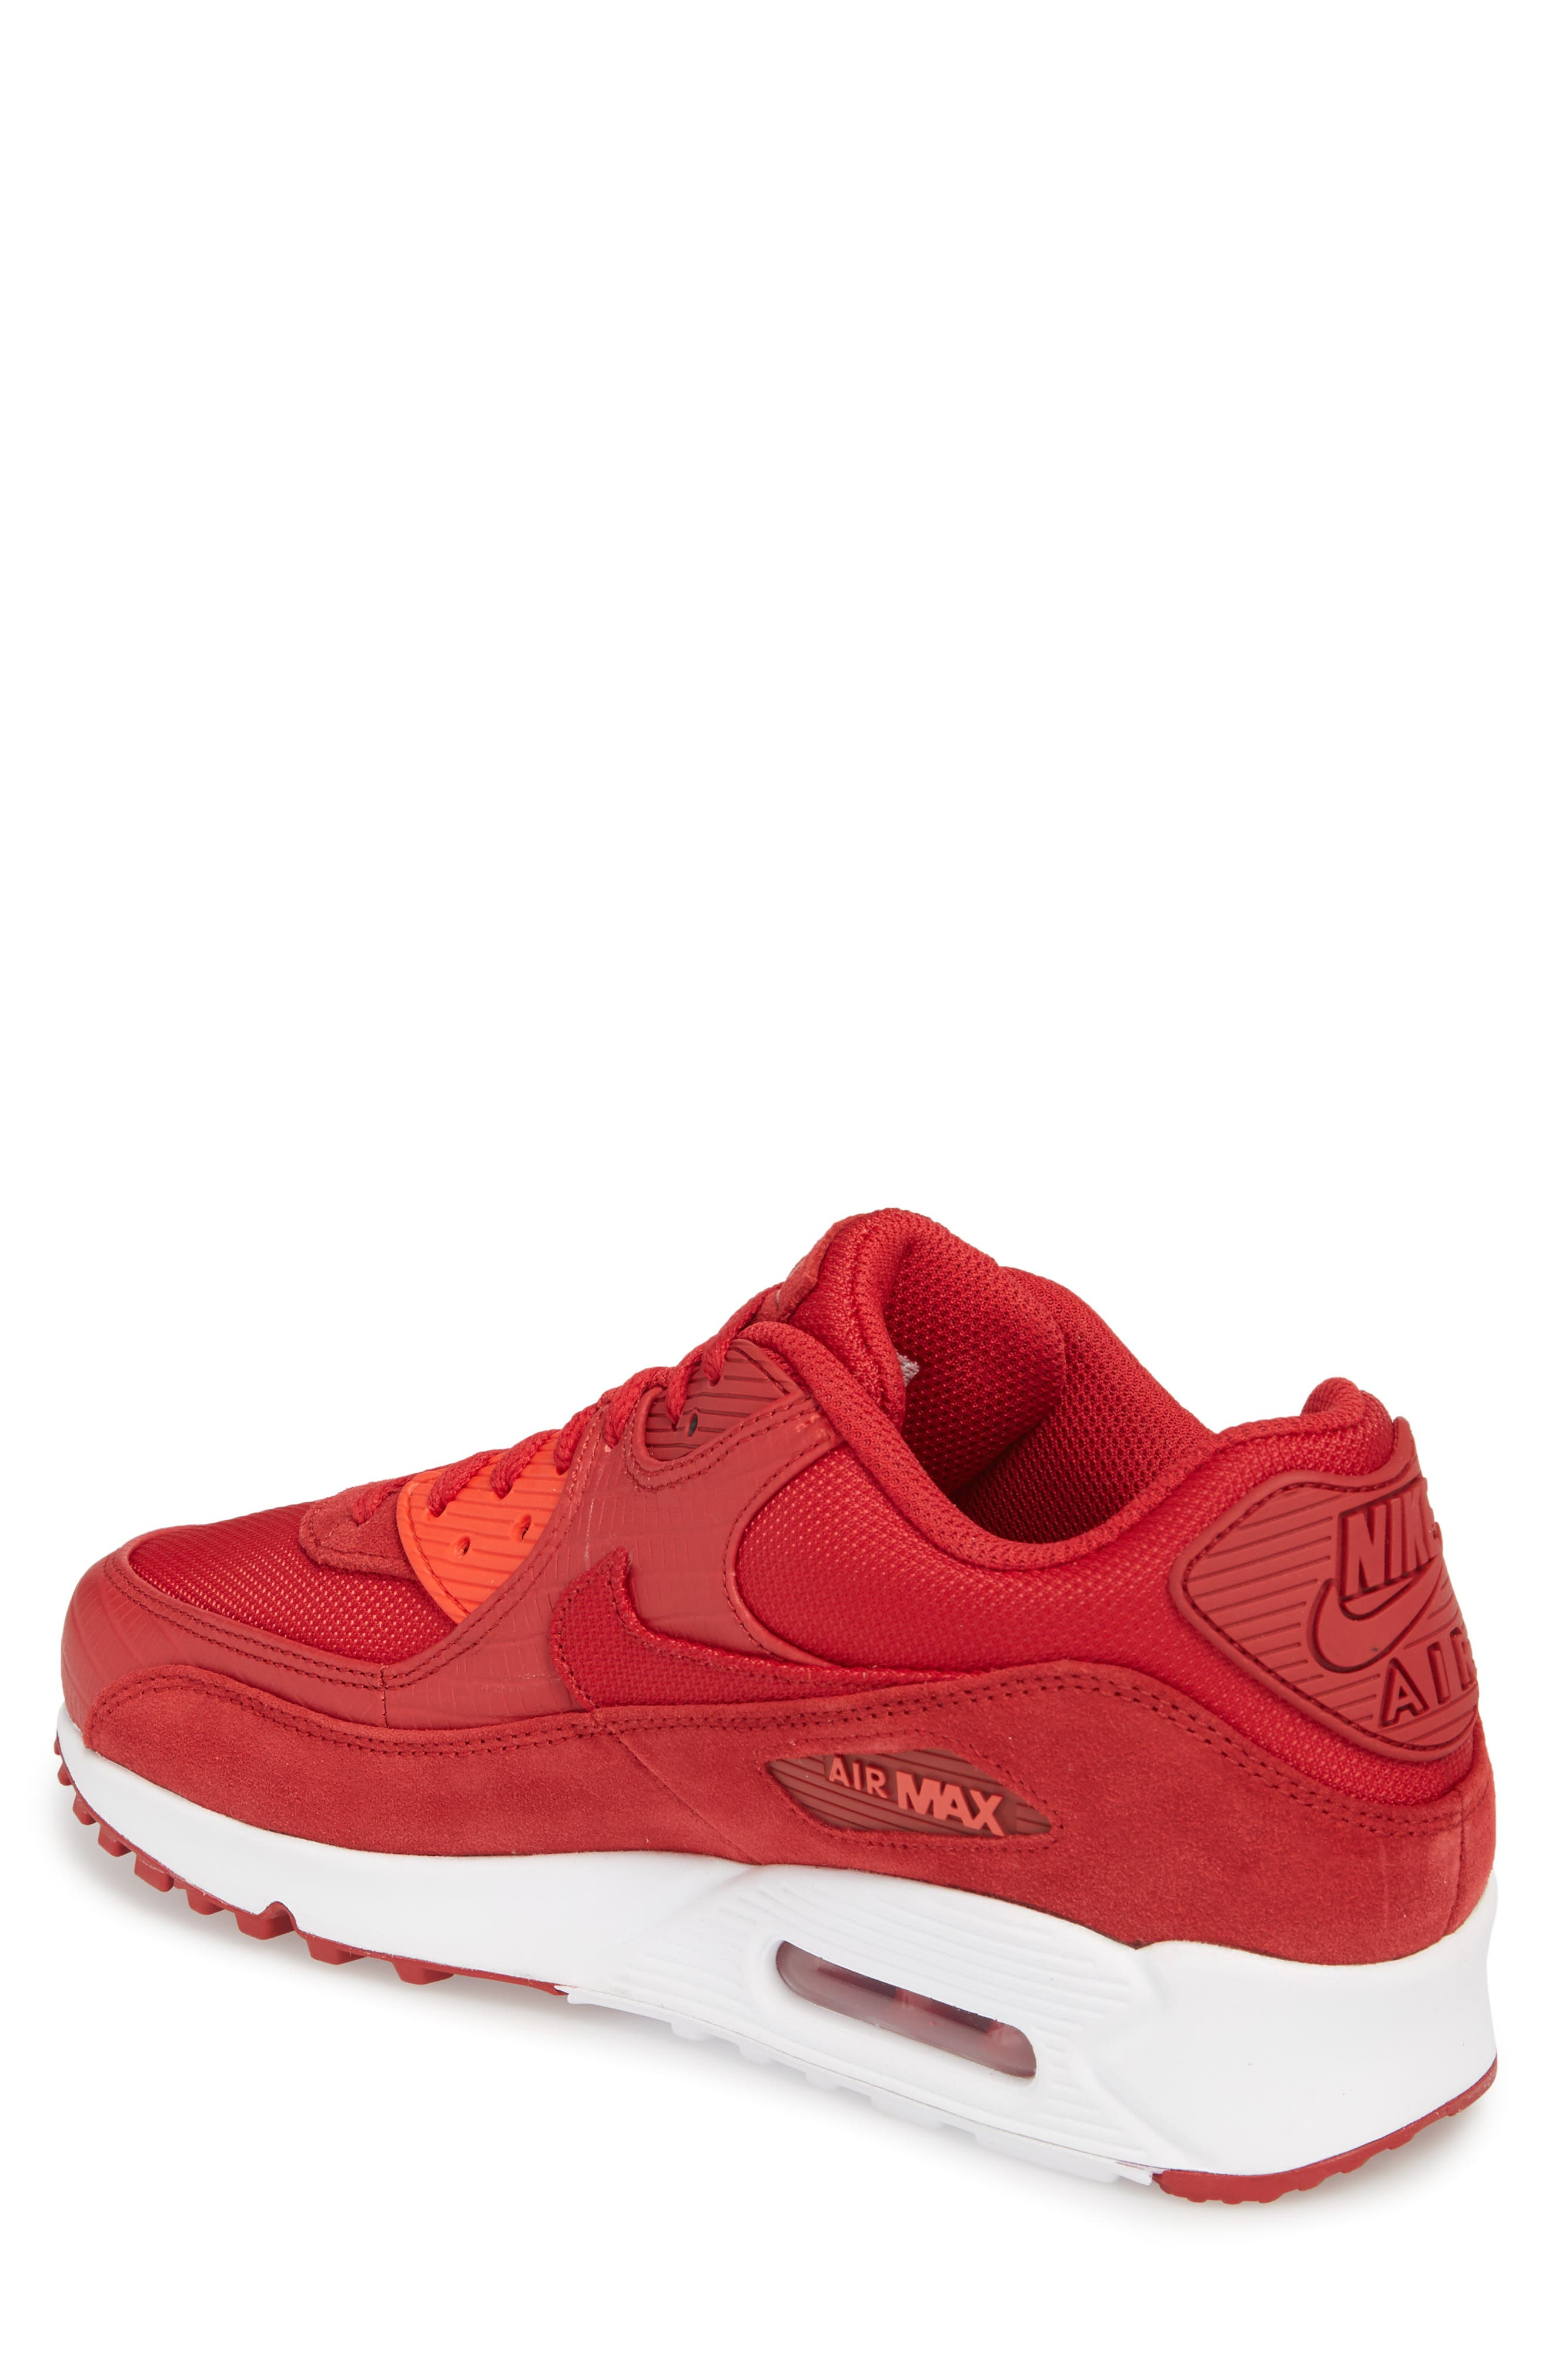 Air Max 90 Premium Sneaker,                             Alternate thumbnail 2, color,                             Gym Red/ White